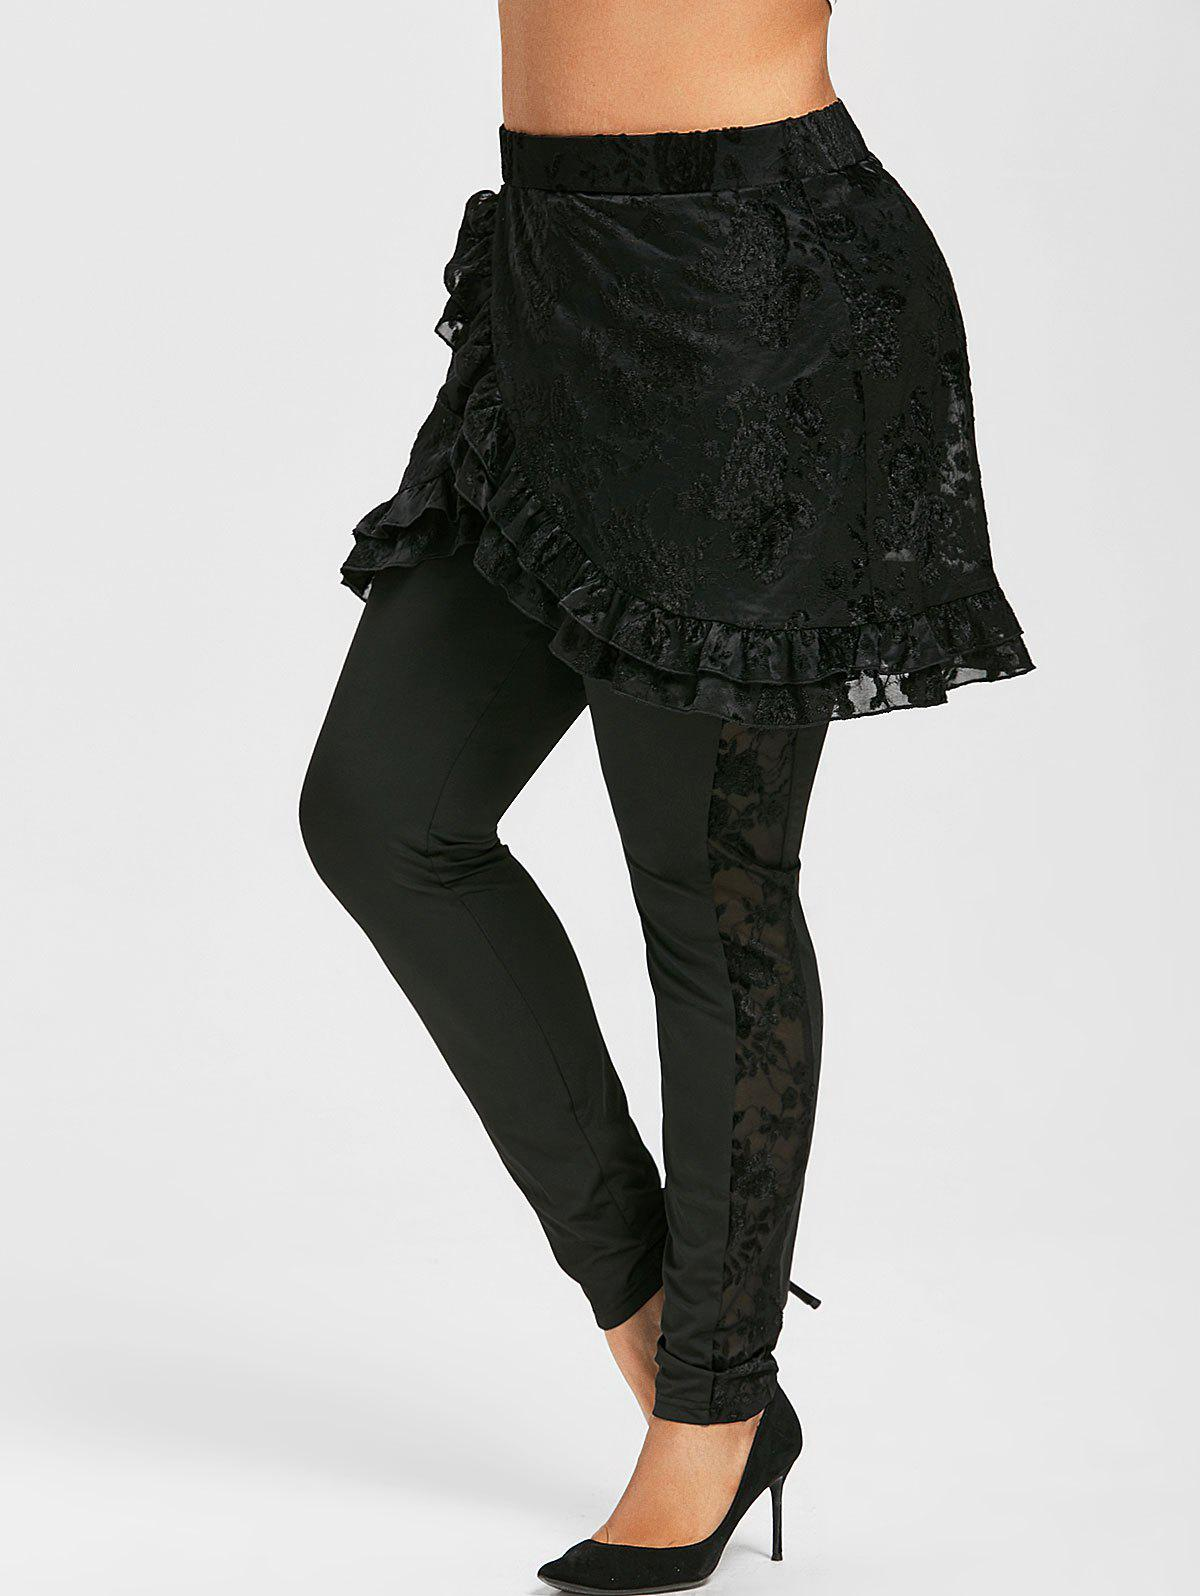 Fancy Plus Size High Rise Ruffle Skirted Pants